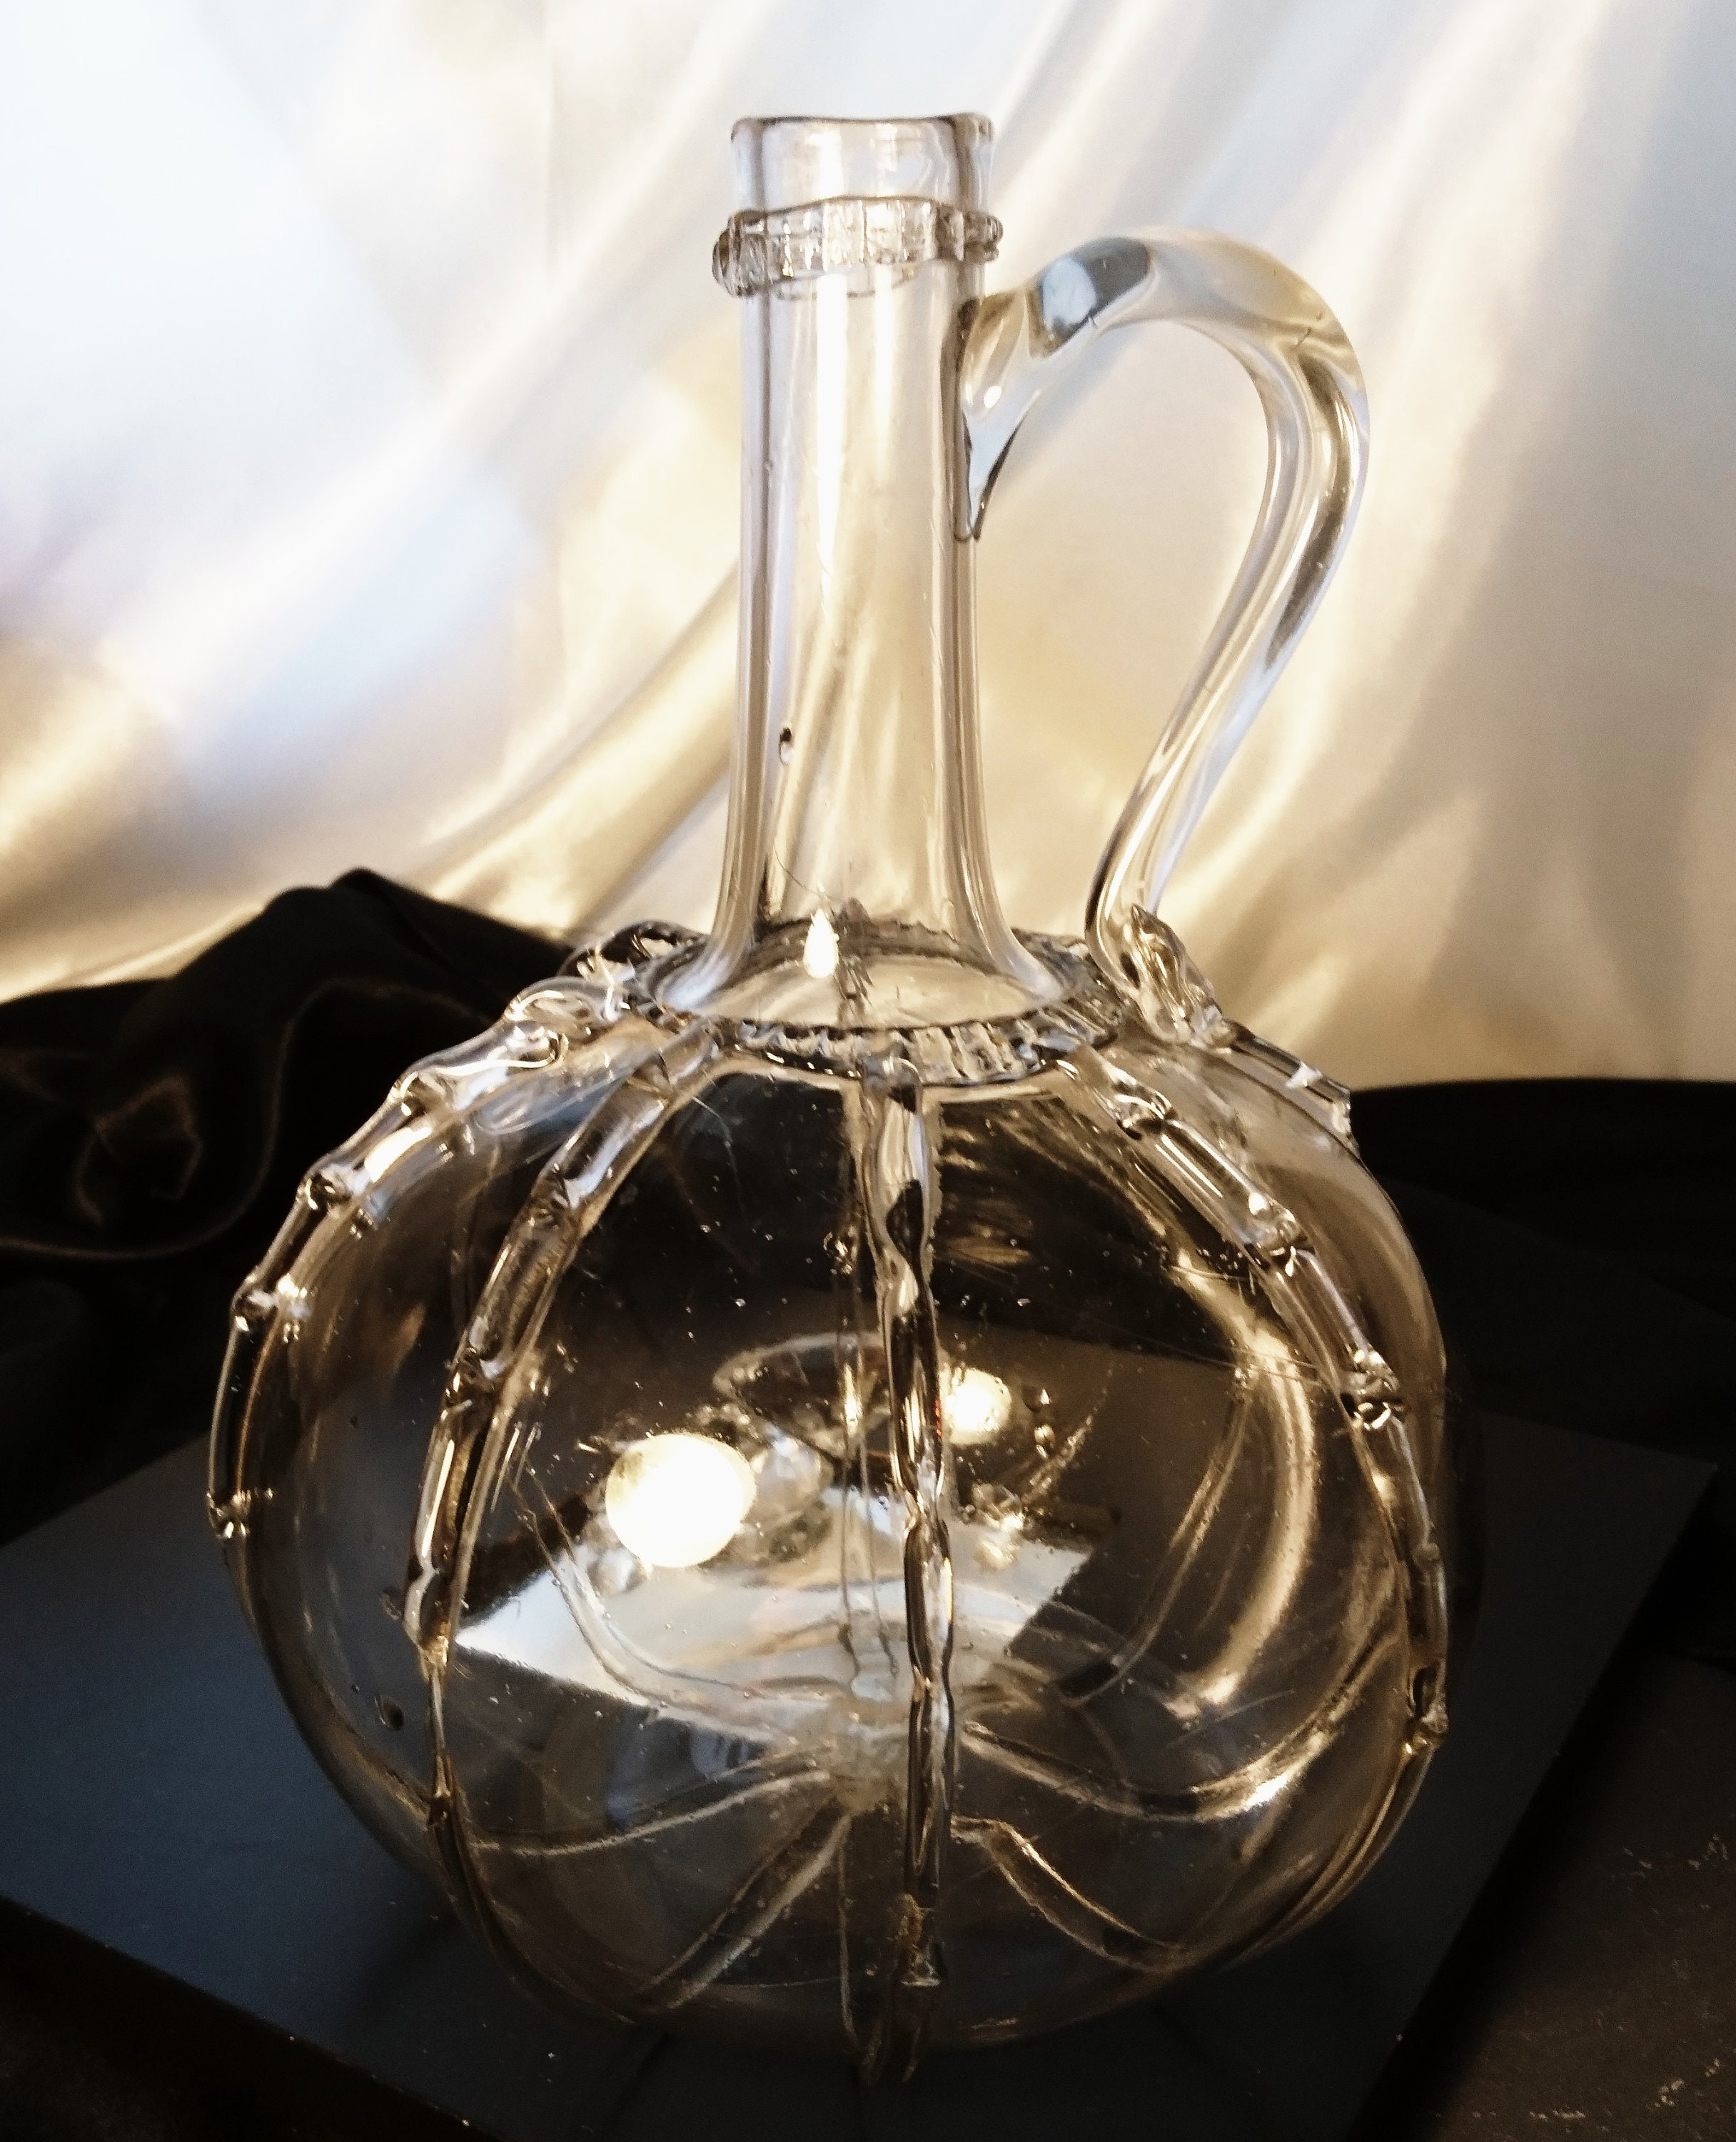 b8886e11dce Antique glass decanter